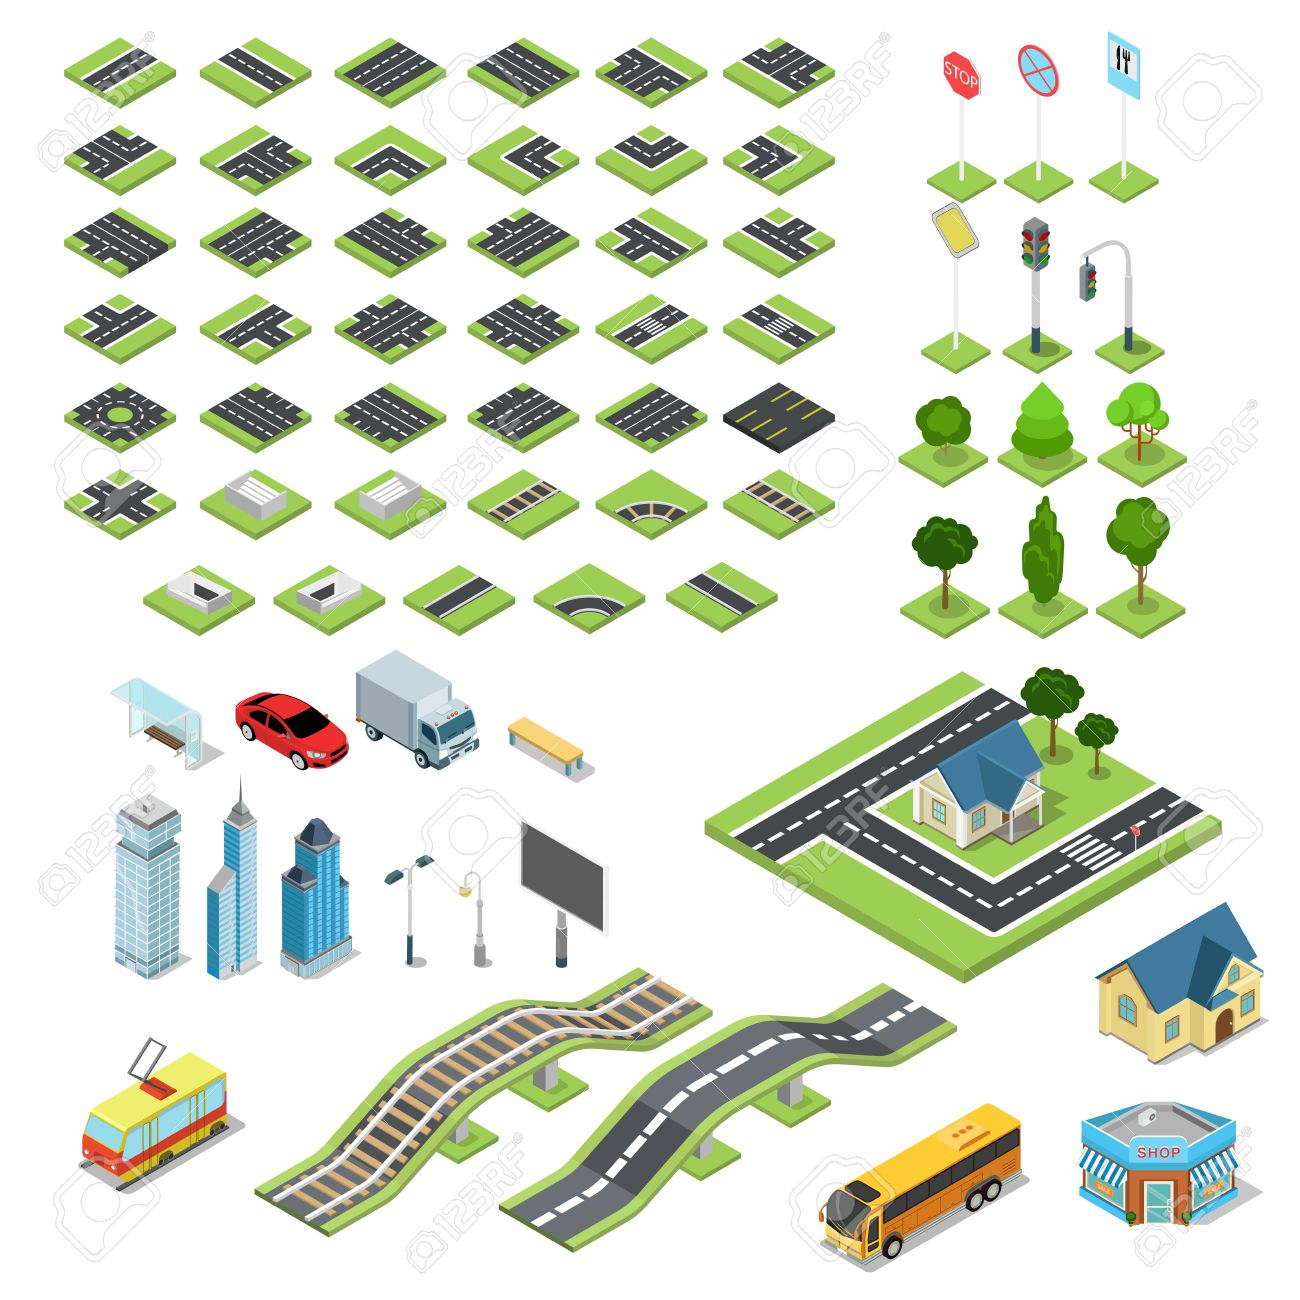 Flat 3d isometric street road sign building blocks infographic concept set. Crossroad railway fountain traffic light lantern skyscraper tram bus shop. Build your own infographics world collection. Stock Vector - 54641278